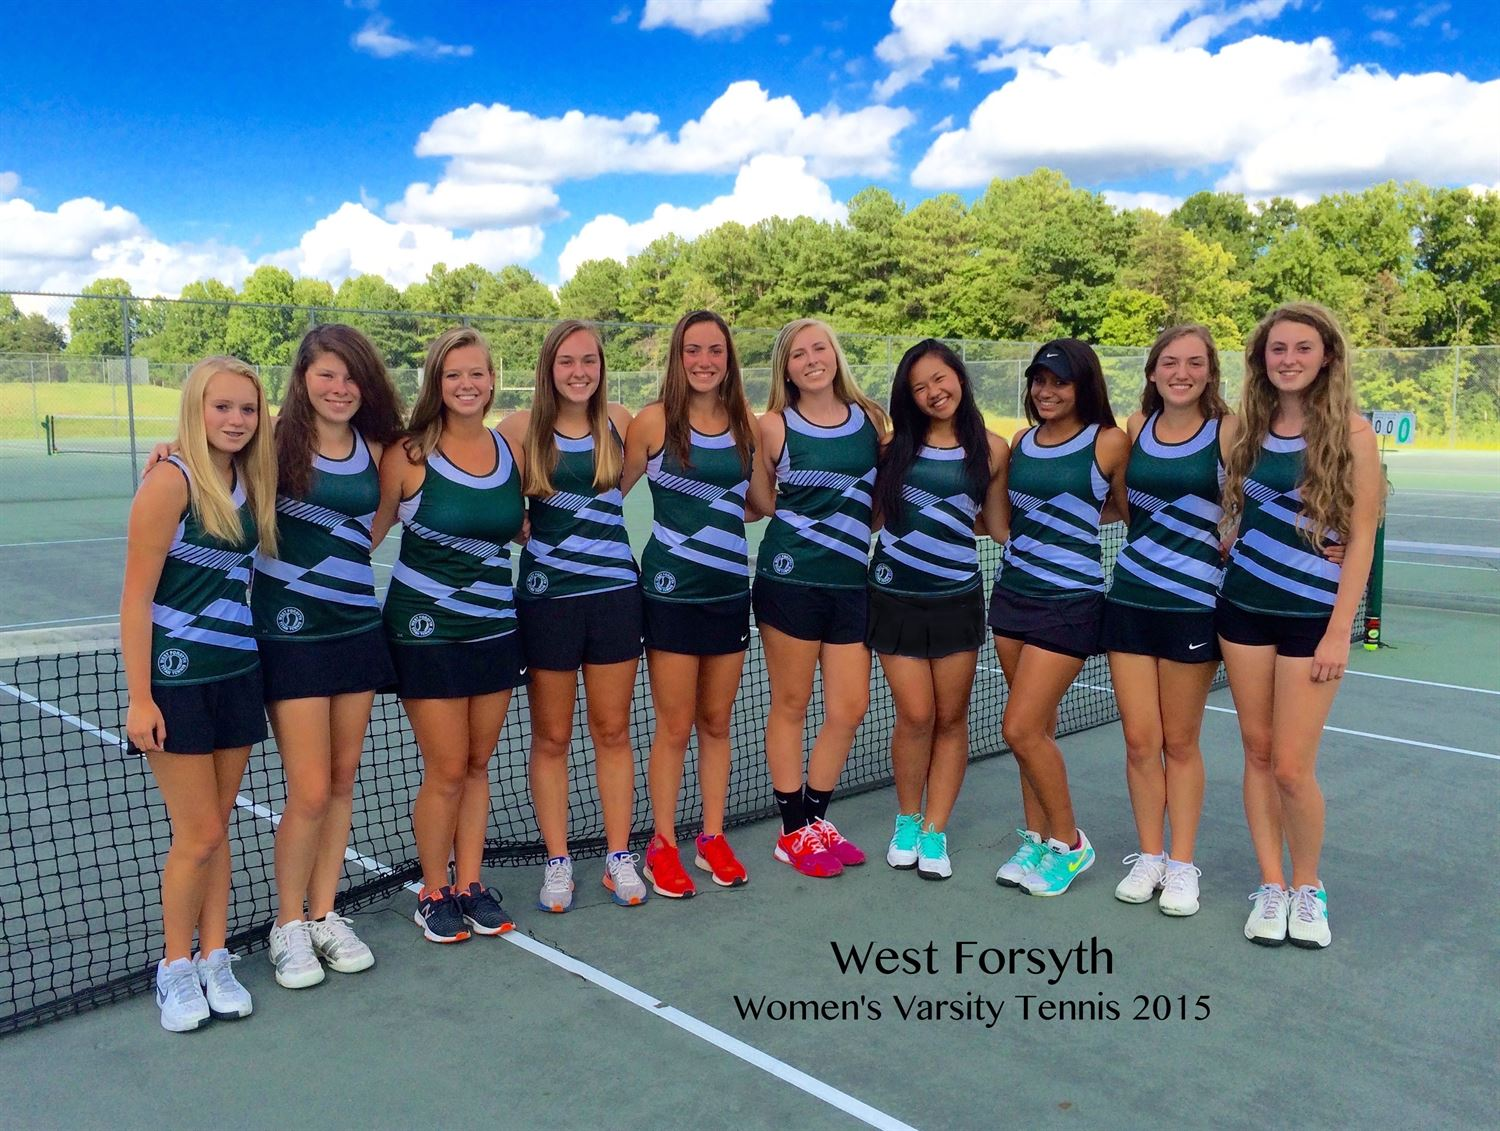 West Forsyth High School - Women's Varsity Tennis